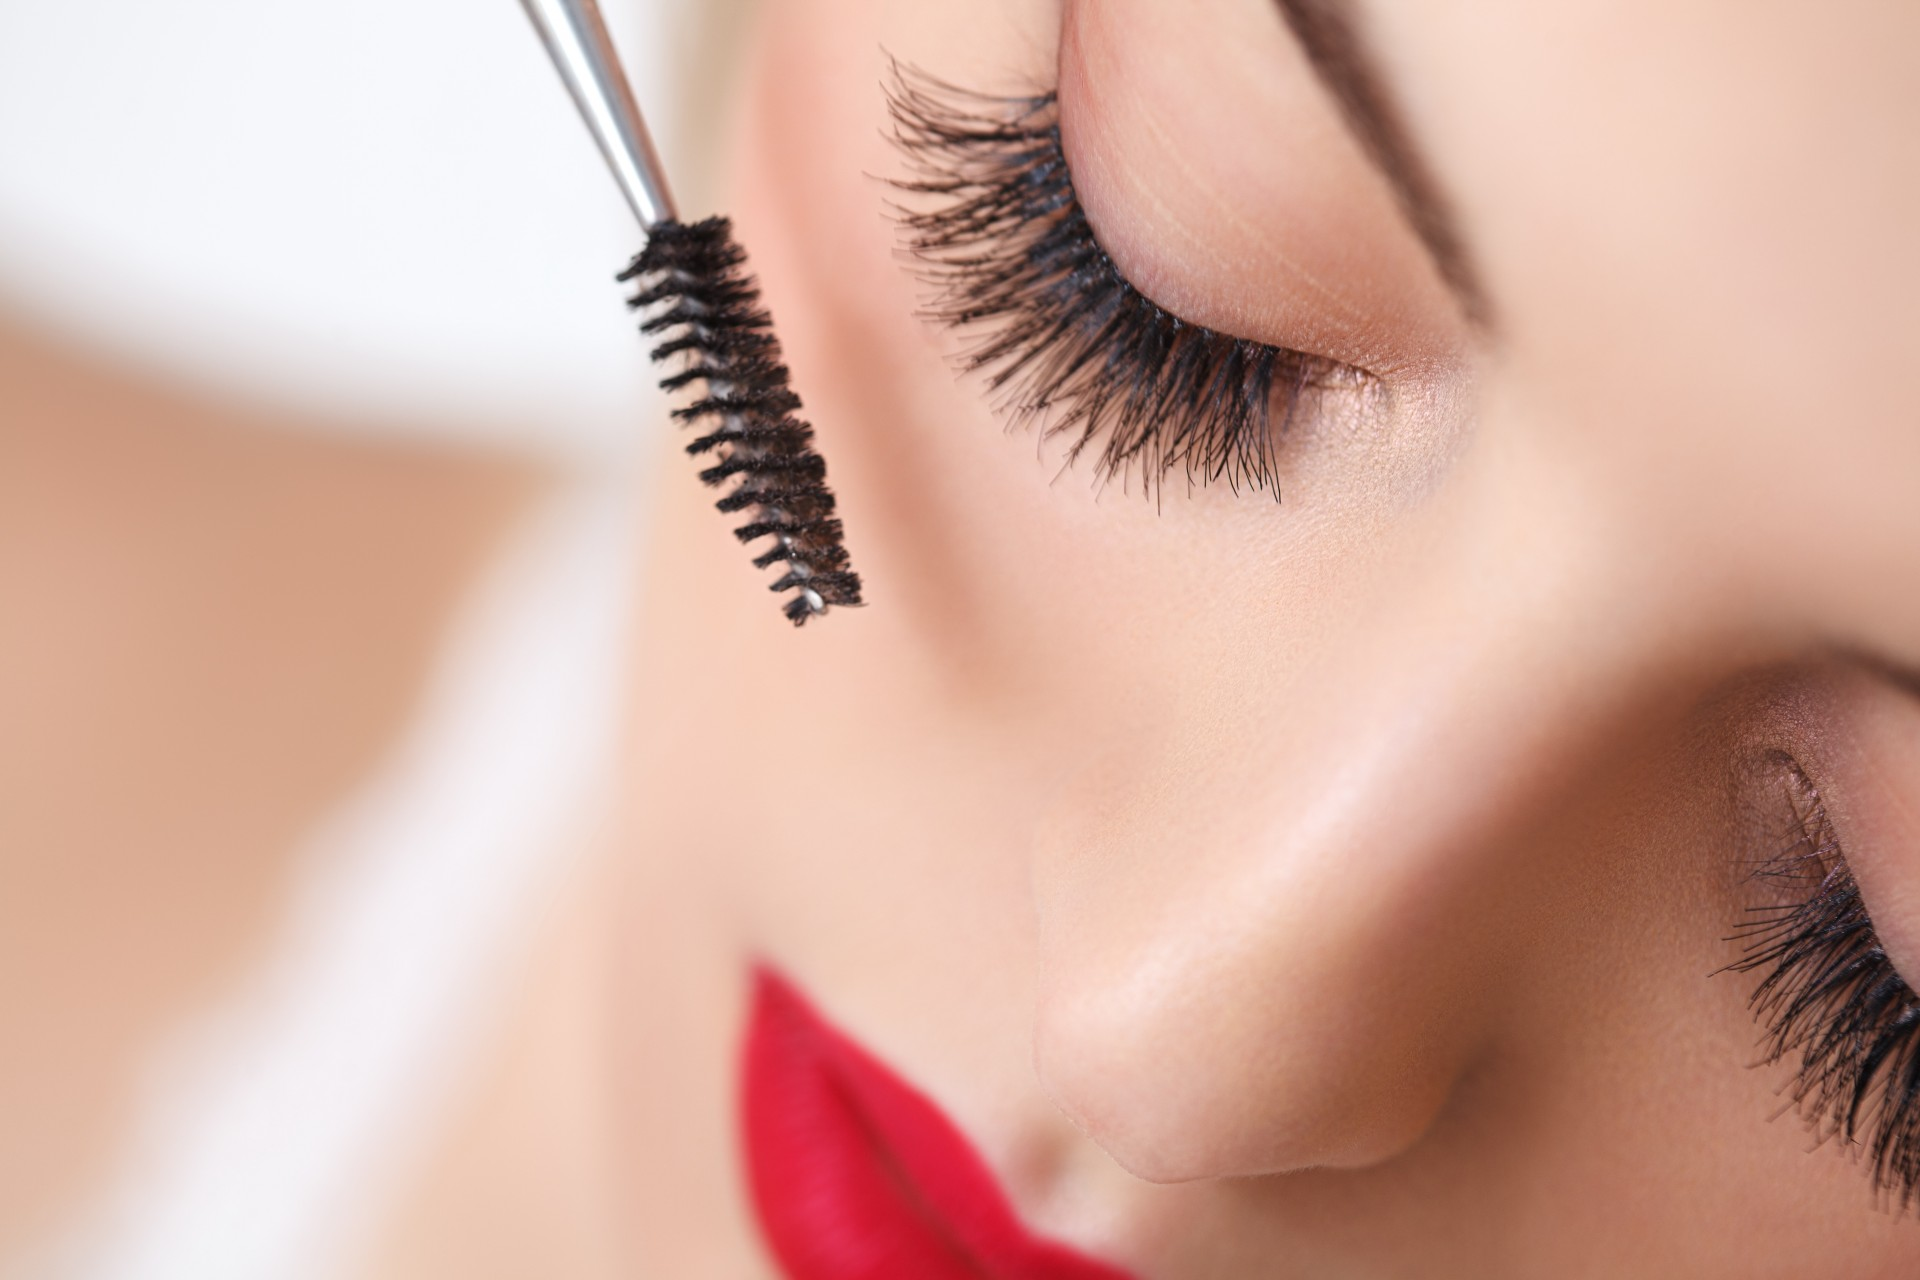 Flutter those lashes at the groom-to-be!